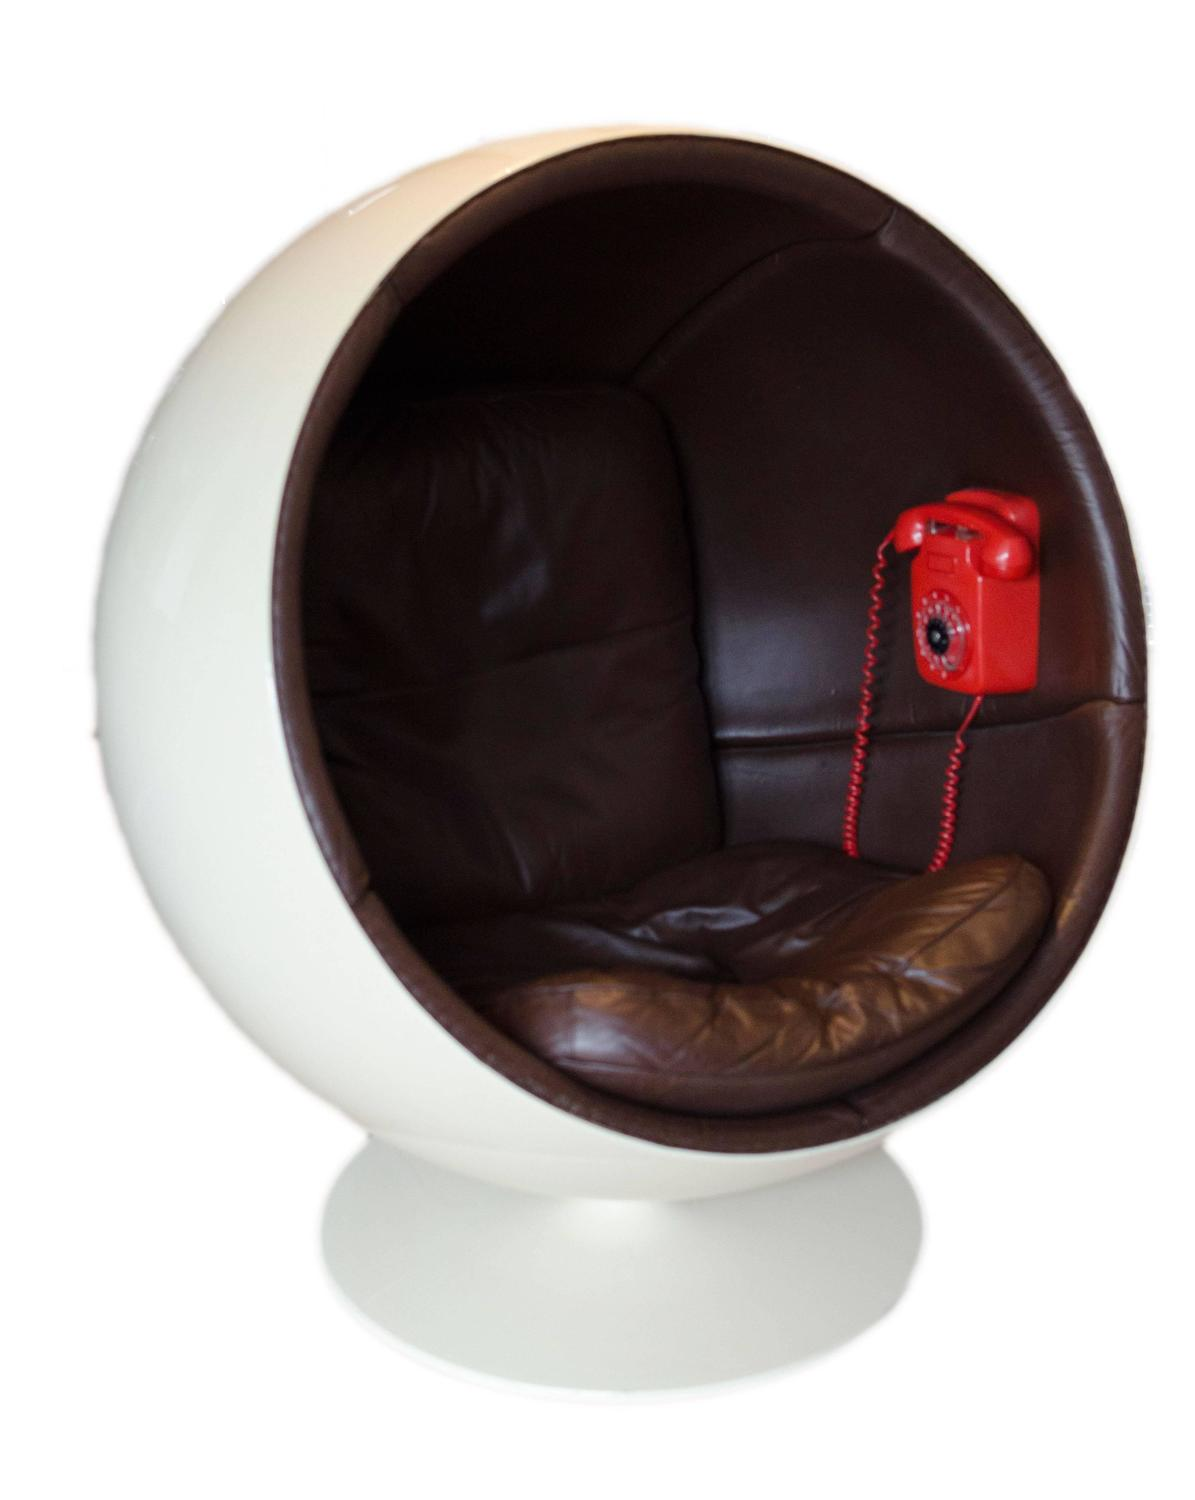 ball chair for sale patio with nesting ottoman canada extremely rare by eero aarnio made asko